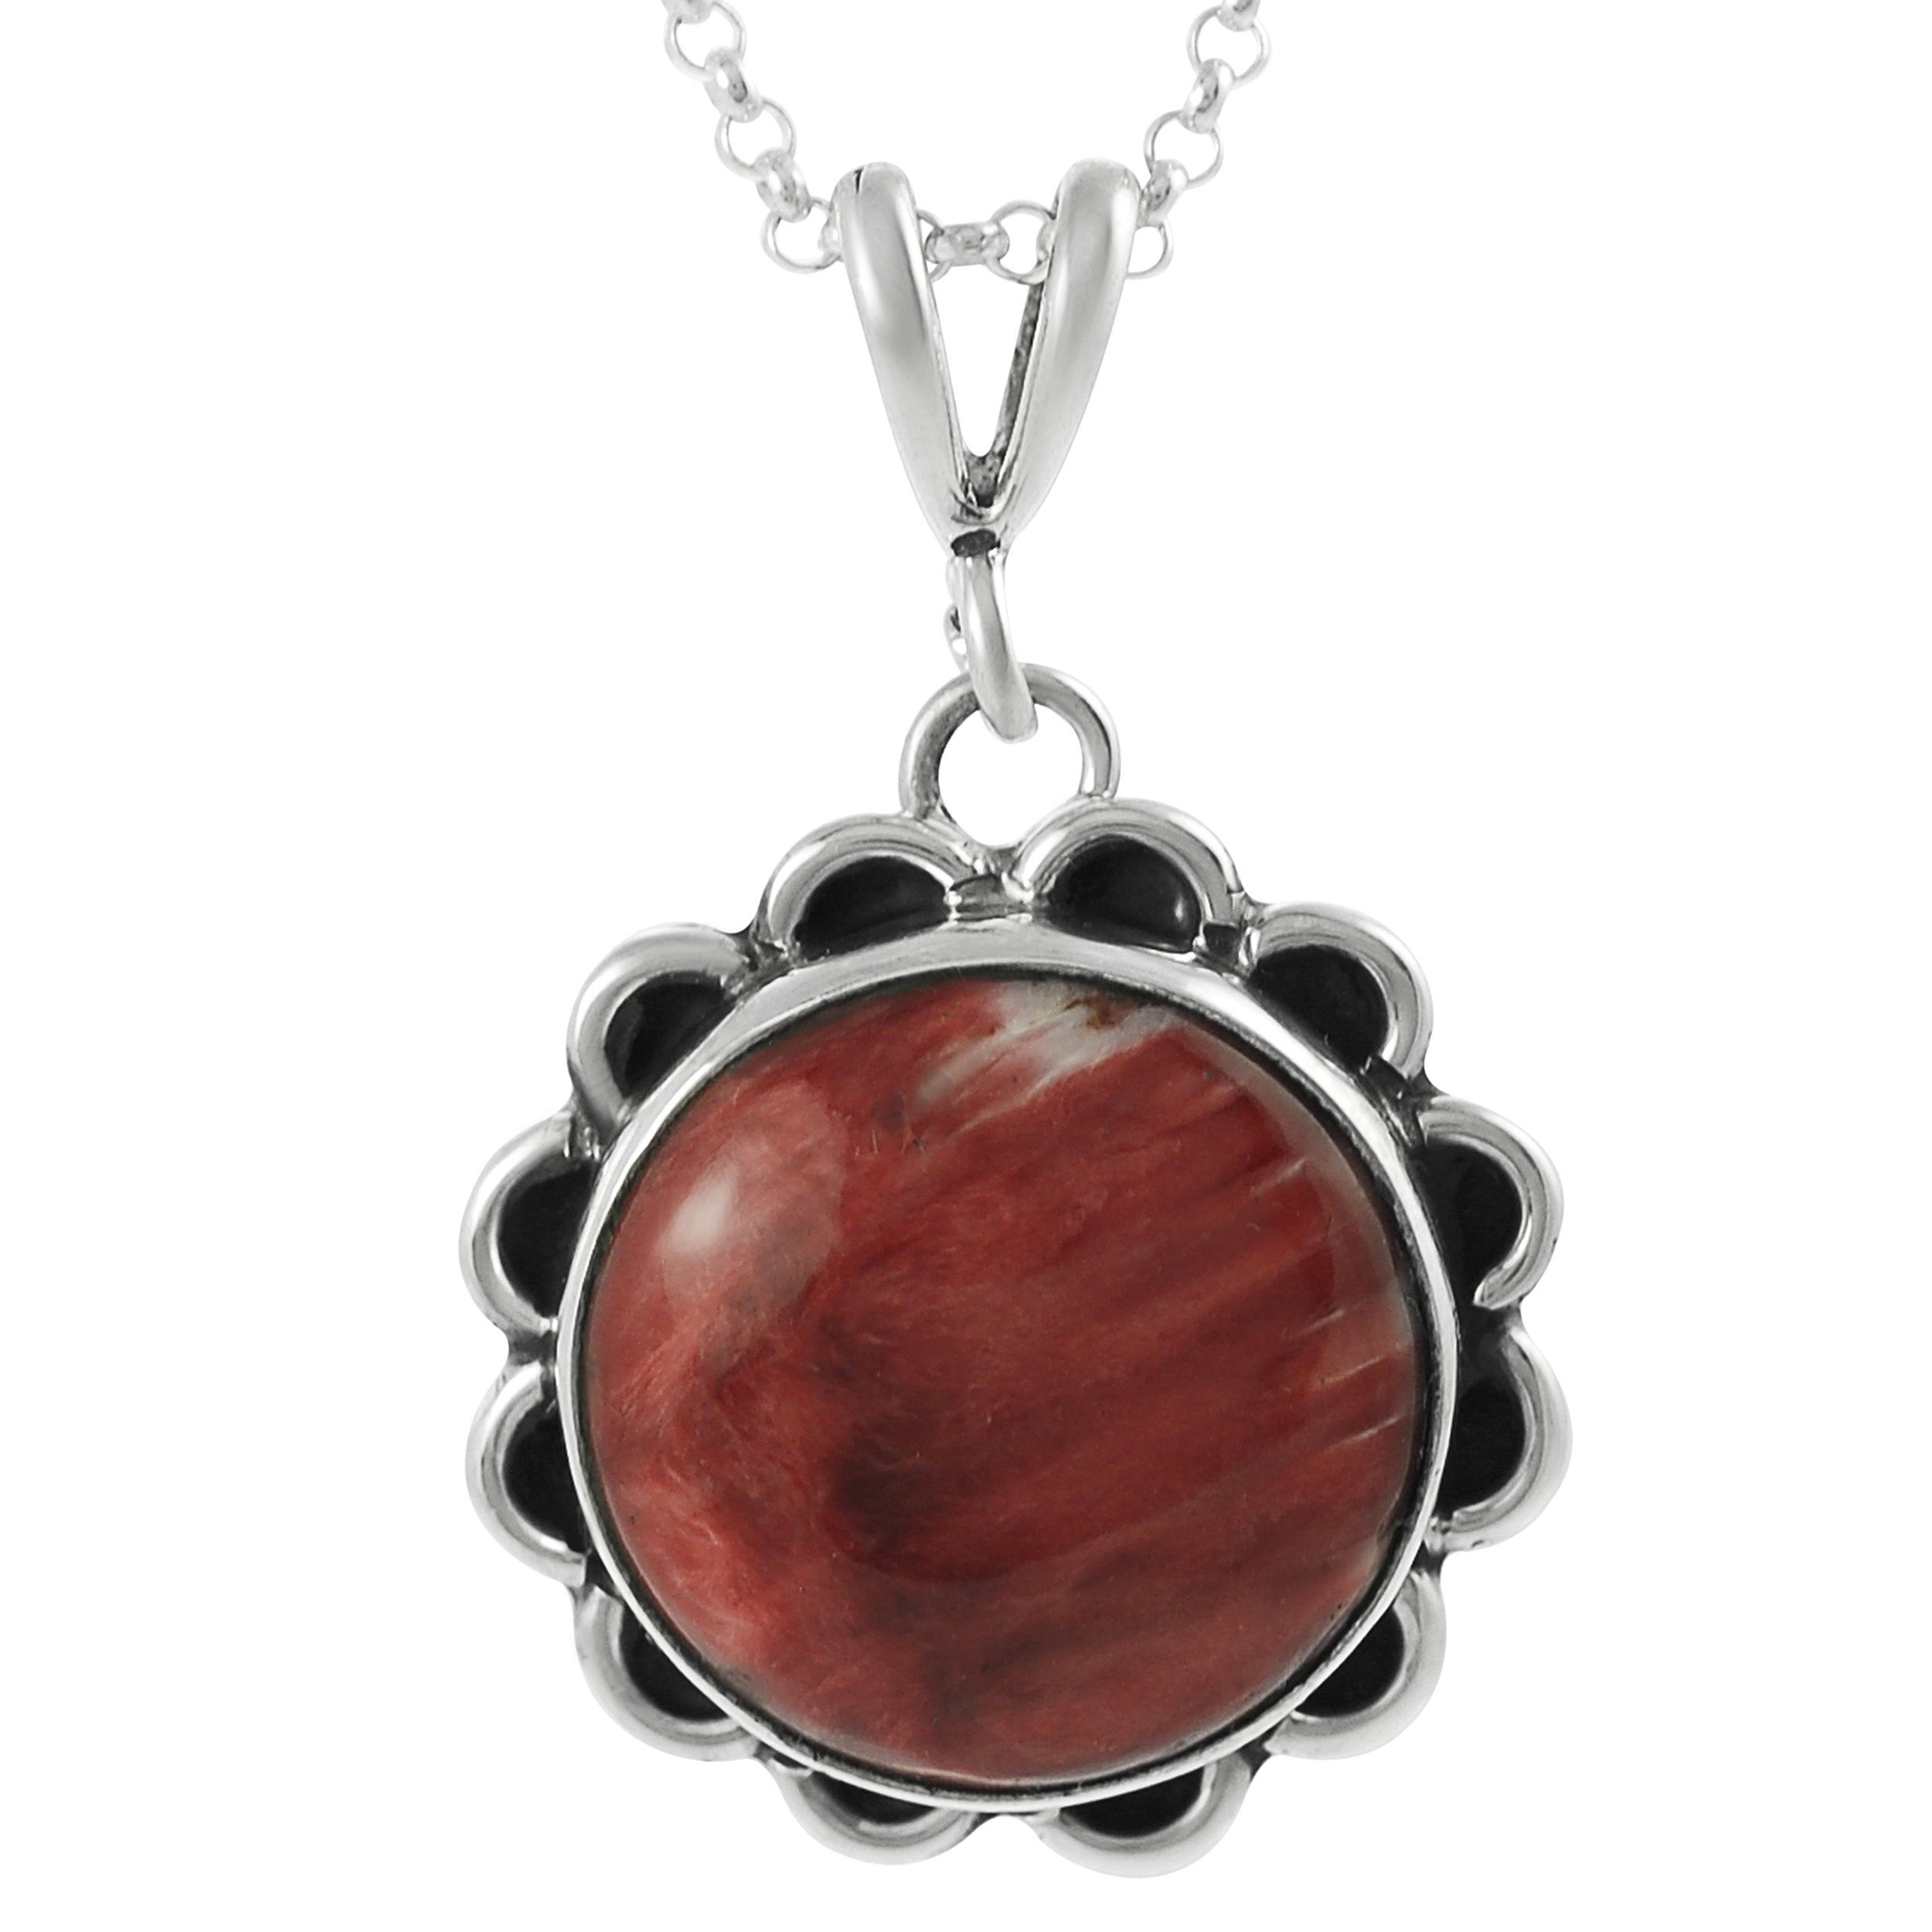 sleek red beauty details products inch the a chain sterling pendant design by stone hang in disc necklaces spirals spiral necklace silver bold sn artisan on coral dashing yuu over laced round alluring this